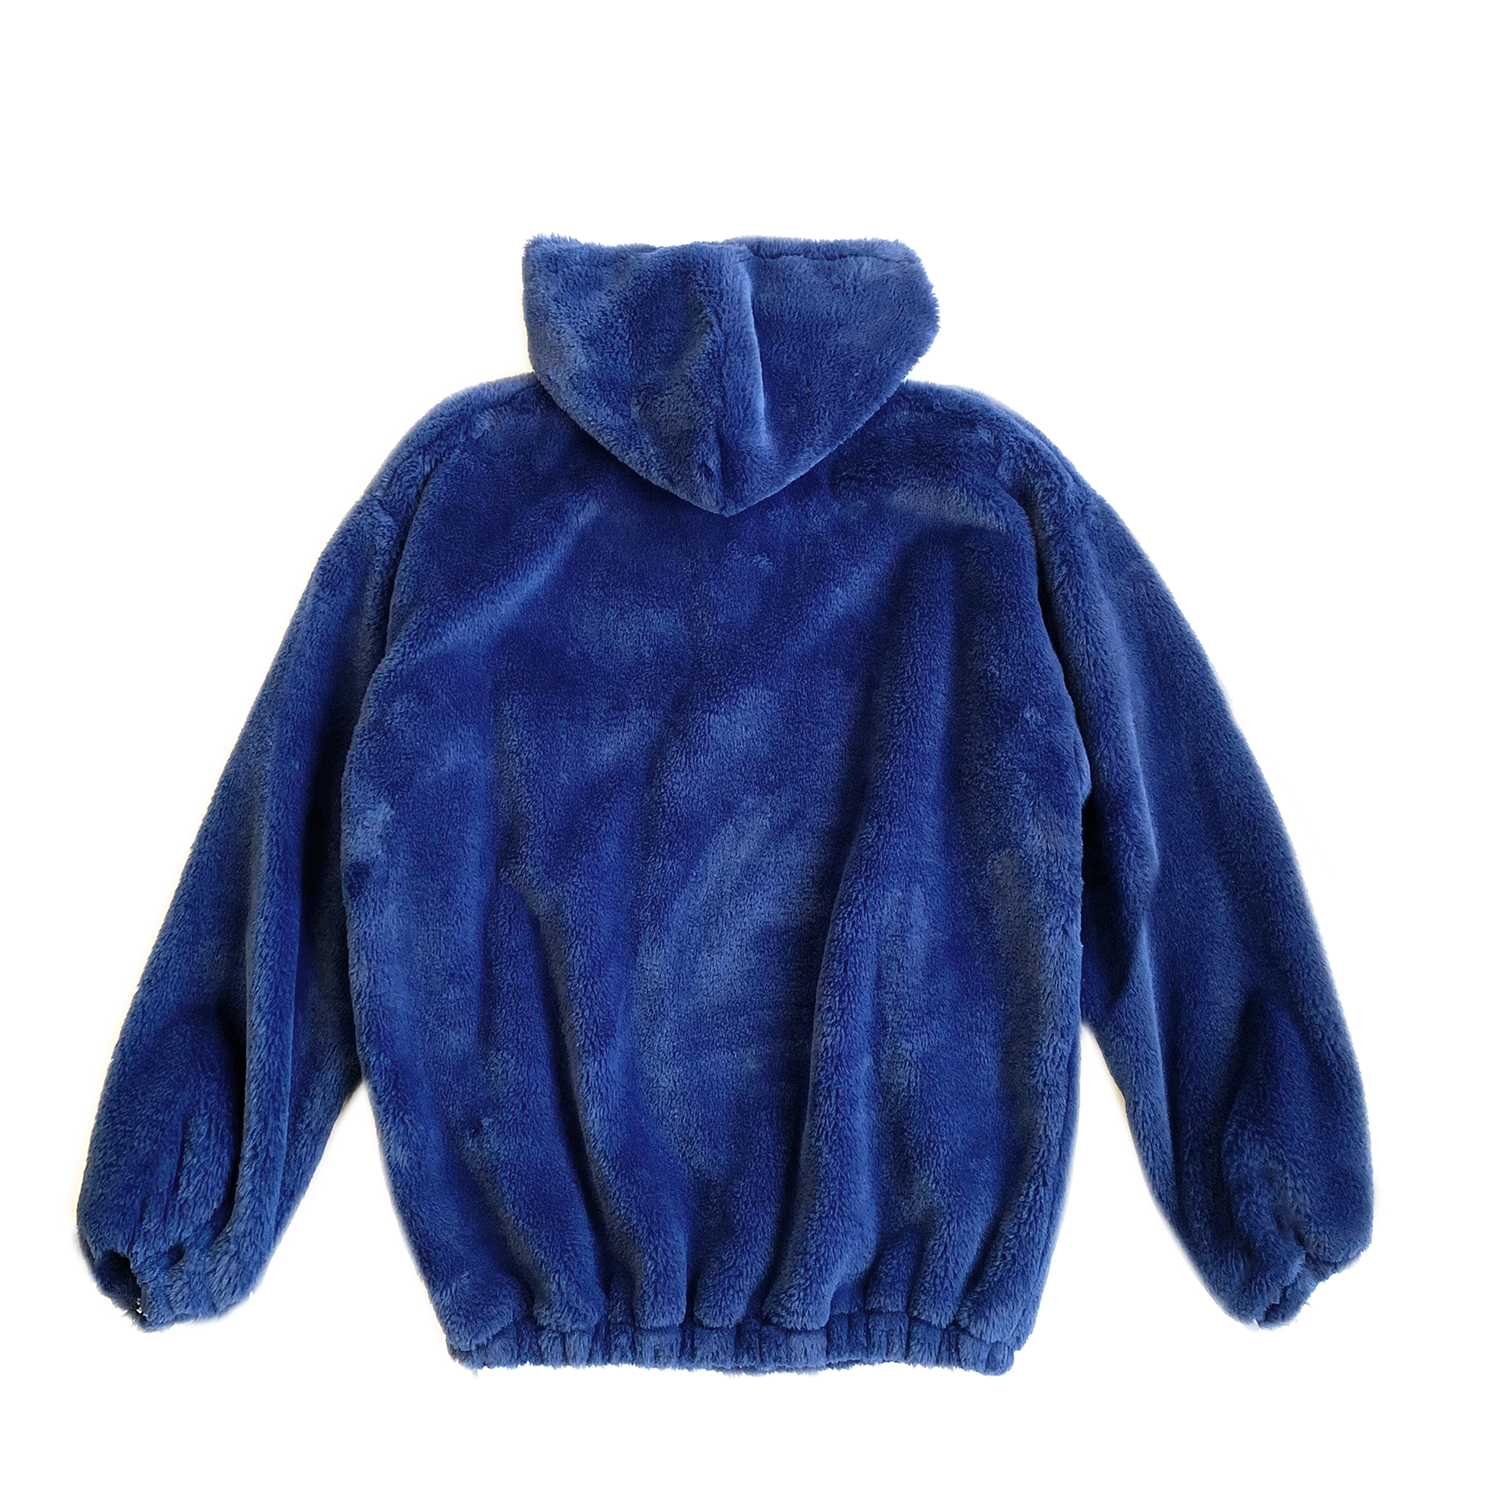 products/recycledteddy_bluelaceup_back.png